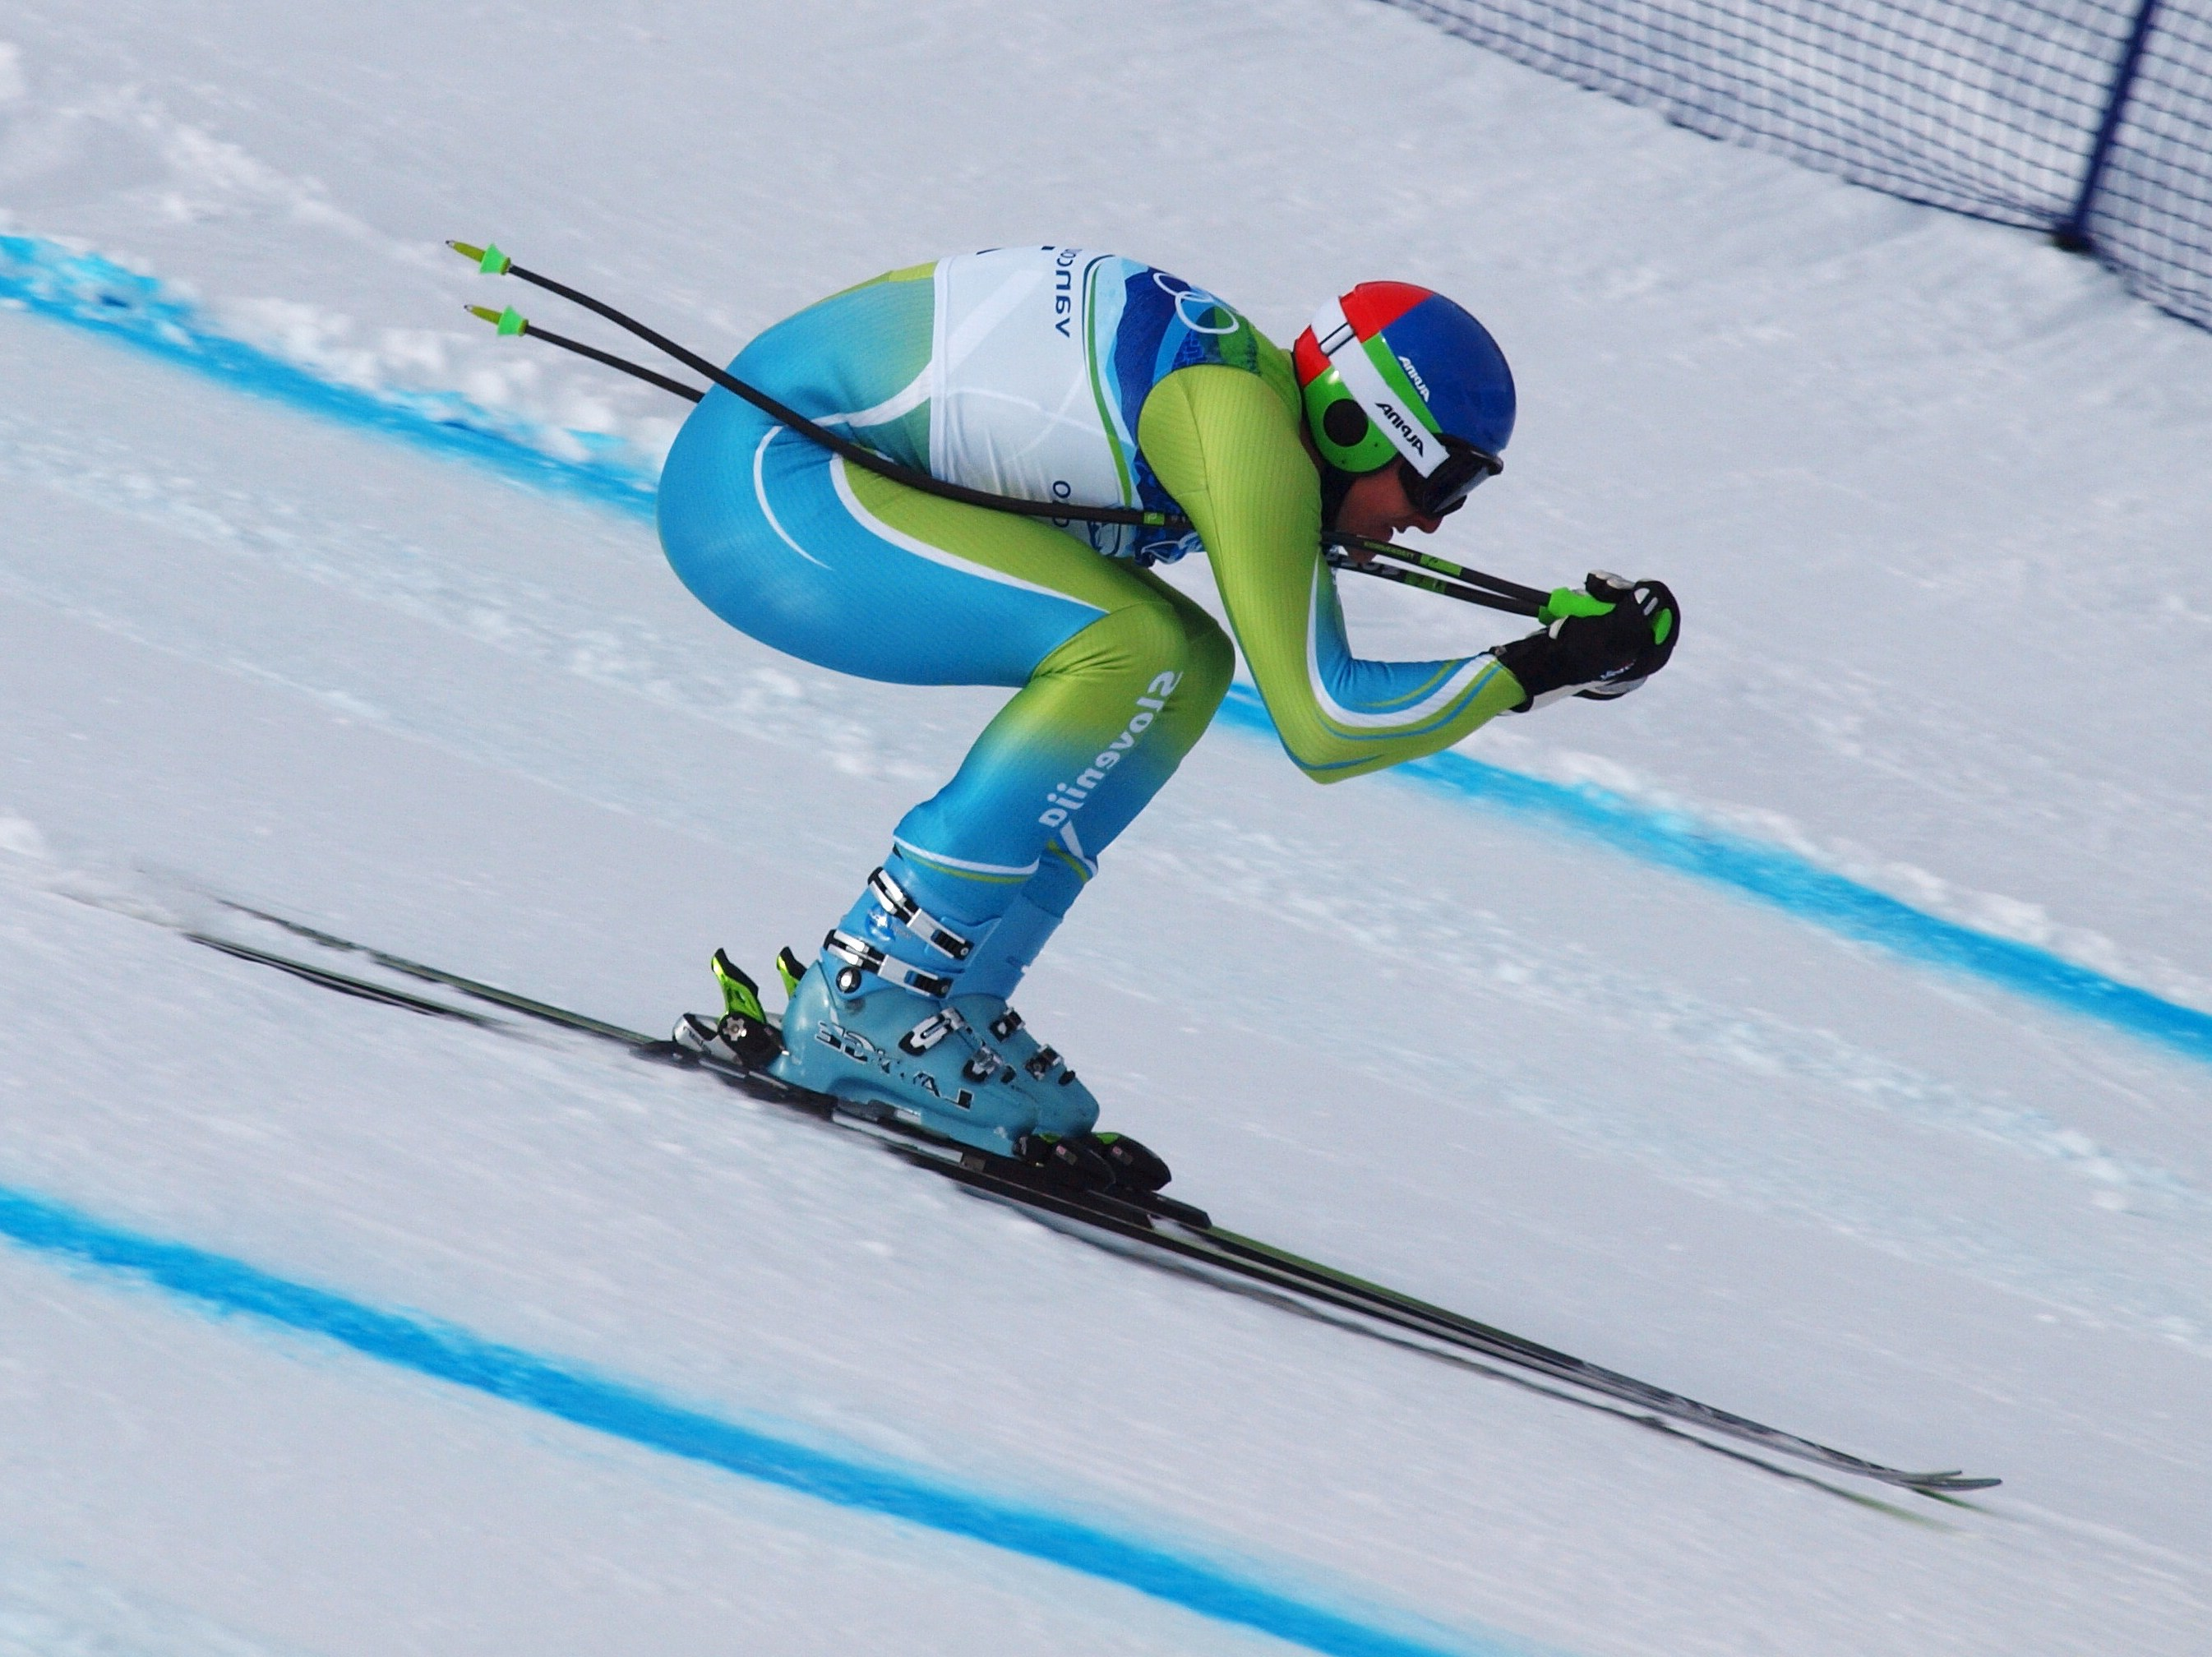 Olympic skier tucked as he races downhill.